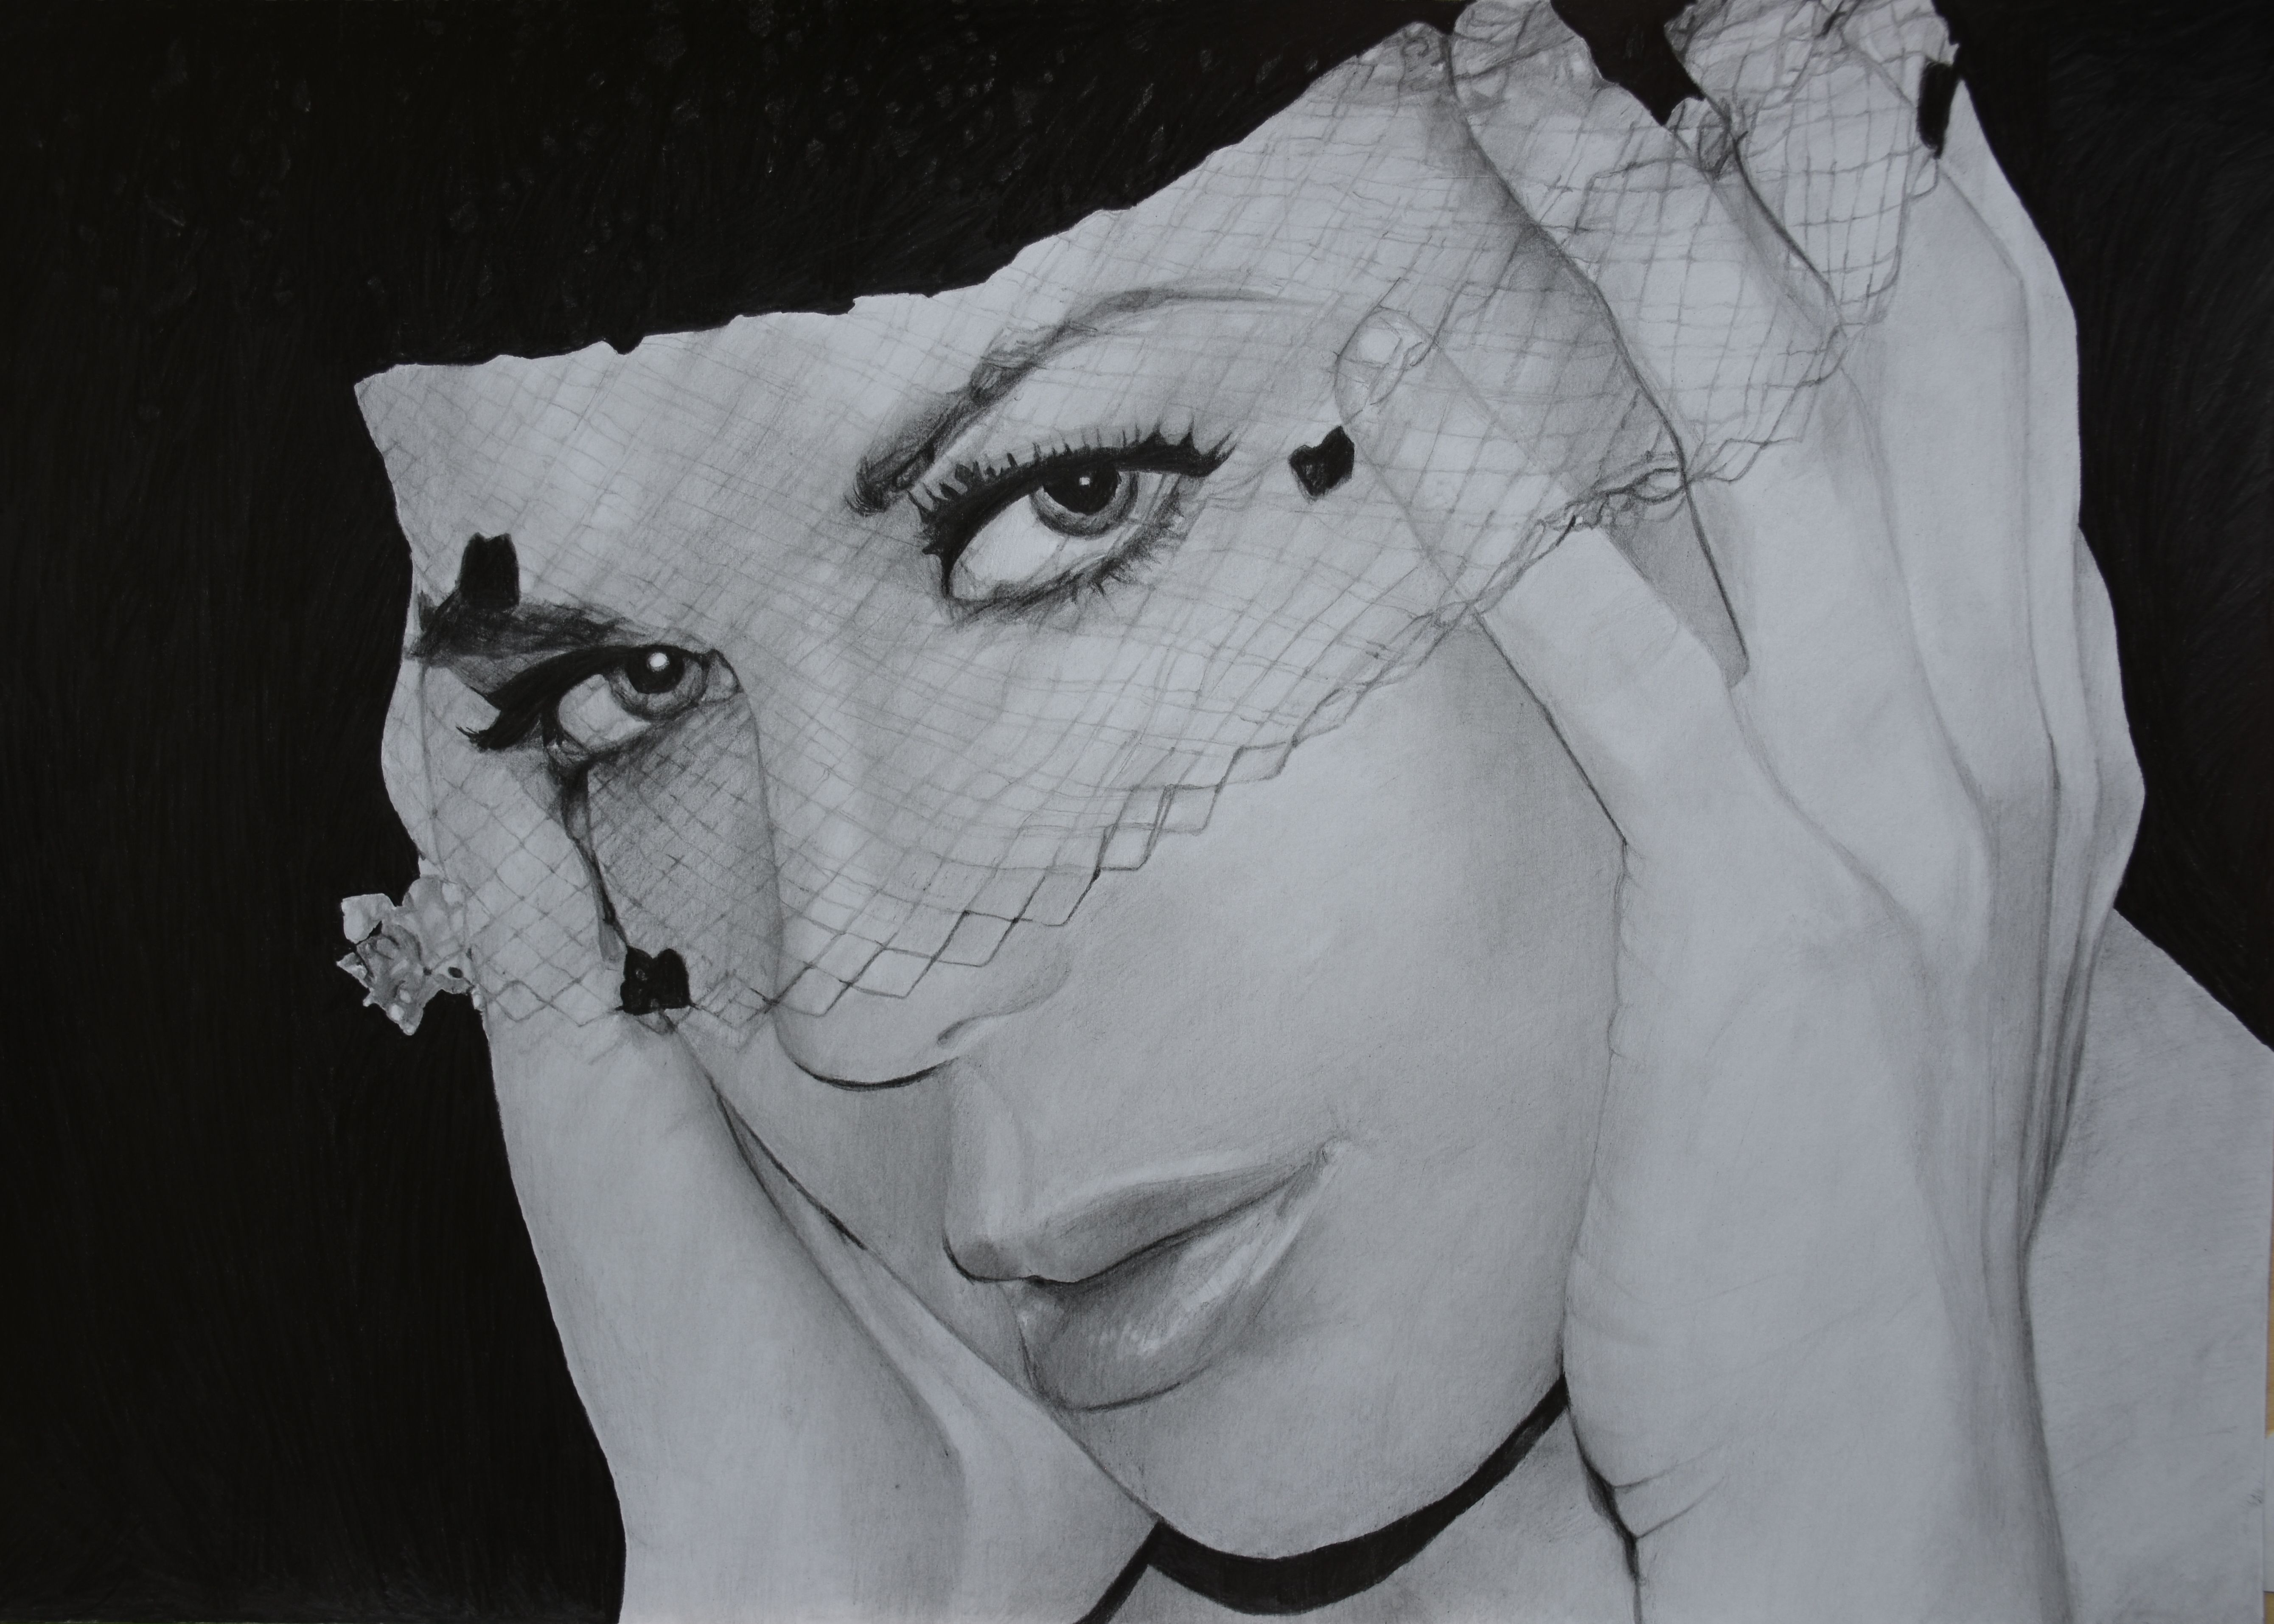 """Name: #JoanMarieLaurer ( #Chyna ) WWF/ WWE NJPW, IGF, TNA Author, Model, Actress & Entertainer, Fitness & Nutrition Enthusiast ...  Features  - Graphite pencils on paper 180g / m² - Signed by the artist Measurements  - 46 x 32 cm / 18.7"""" W x 13.2"""" H Inch  Video on YouTube → https://youtu.be/0Ev4pcqhIvg #Art #Drawing #CreationByKK"""